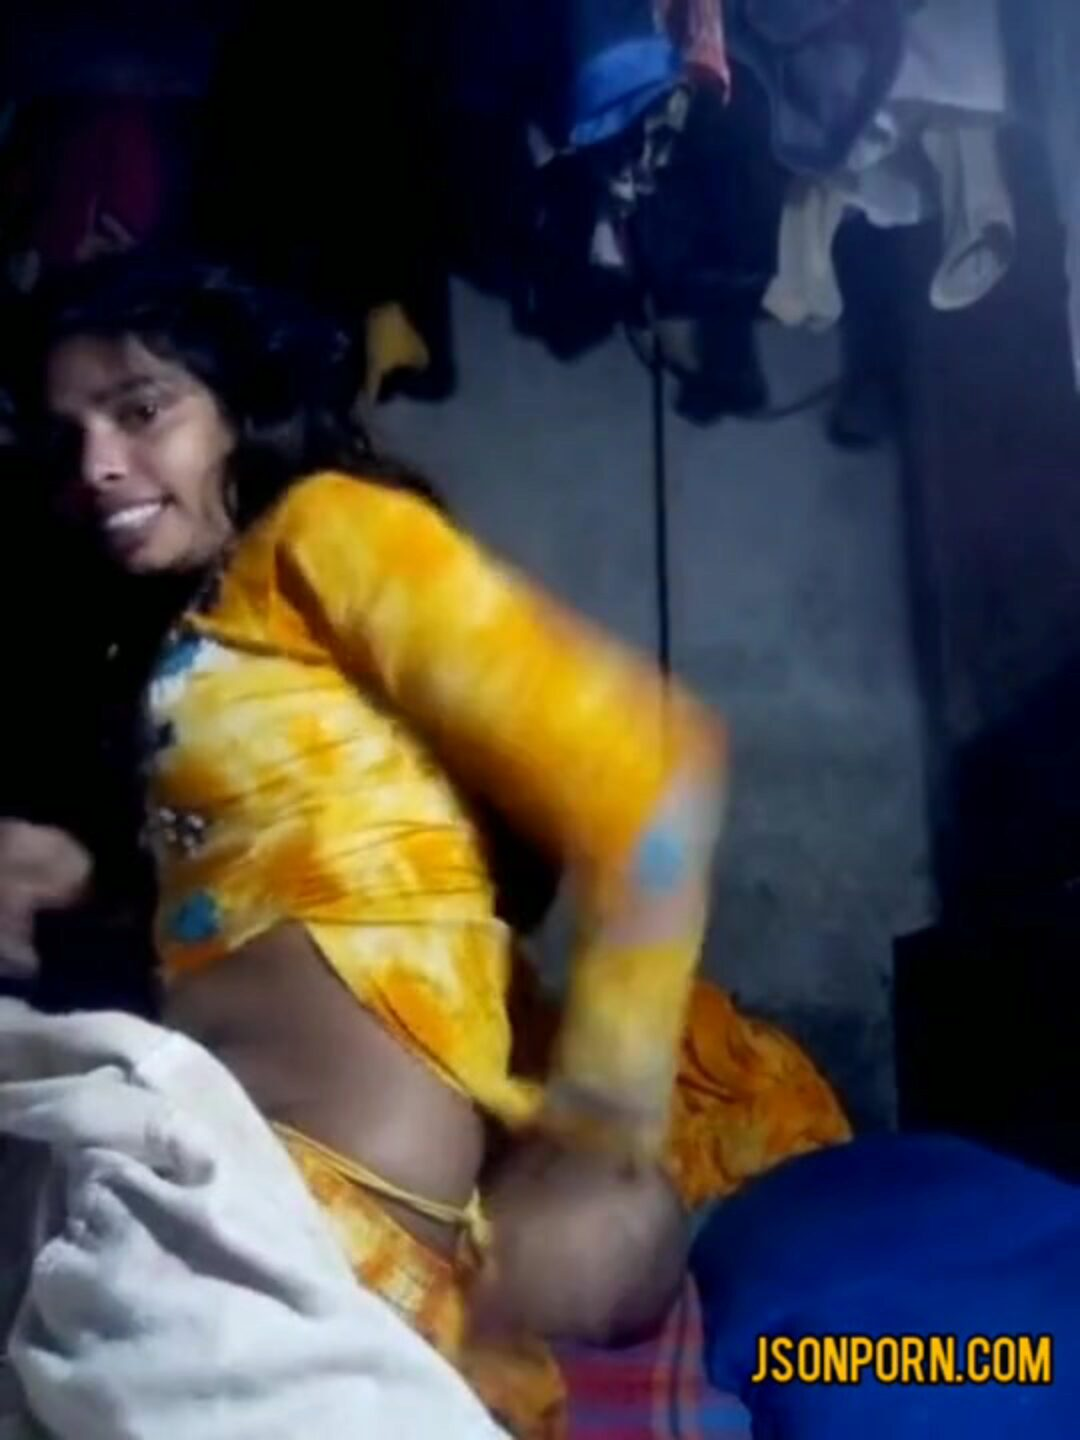 Delhi MMS dripped video Watch delhi gal pulverize mms video oozed doing assfucking and fellatio She loves to do sole job and engulf ramrod Fuck by her beau in lockdown that babe is very slutty in lockdown Json Porn